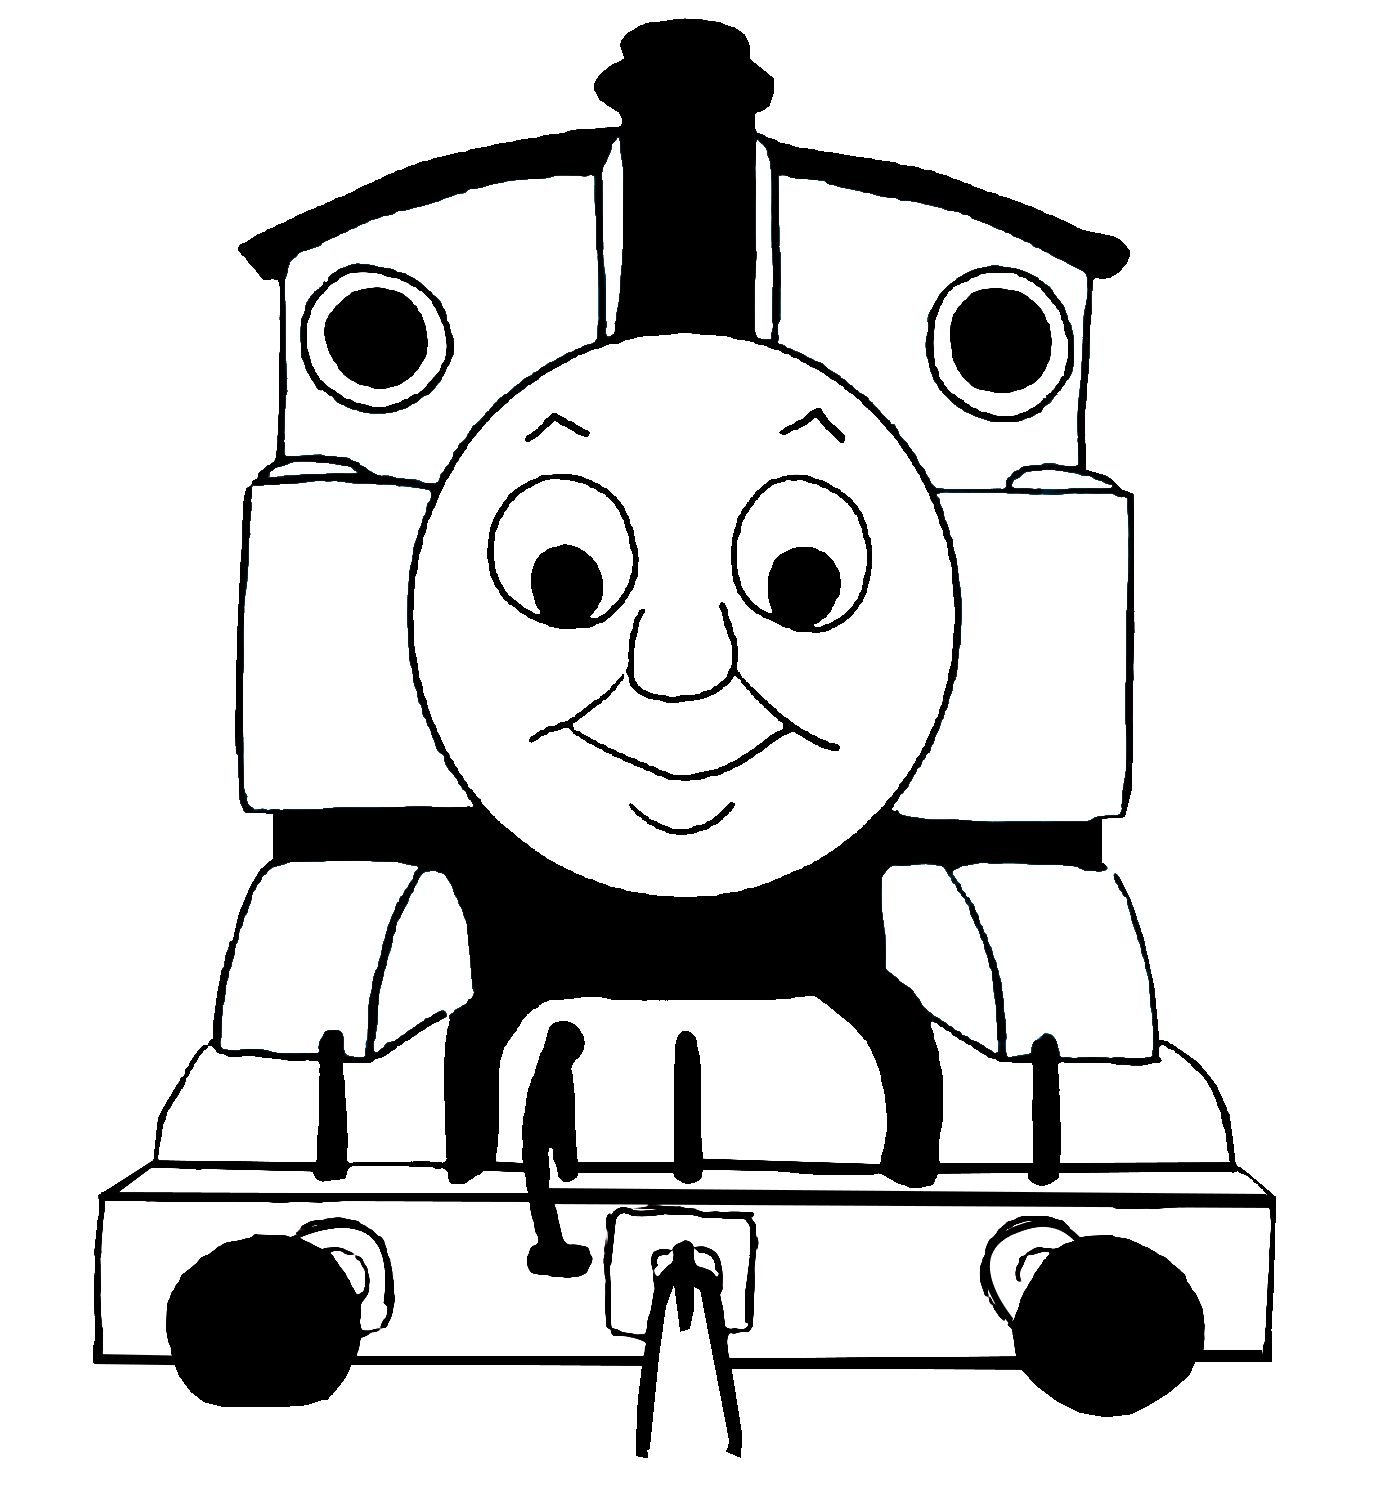 Images for thomas train clip art black and white for Thomas the tank engine face template